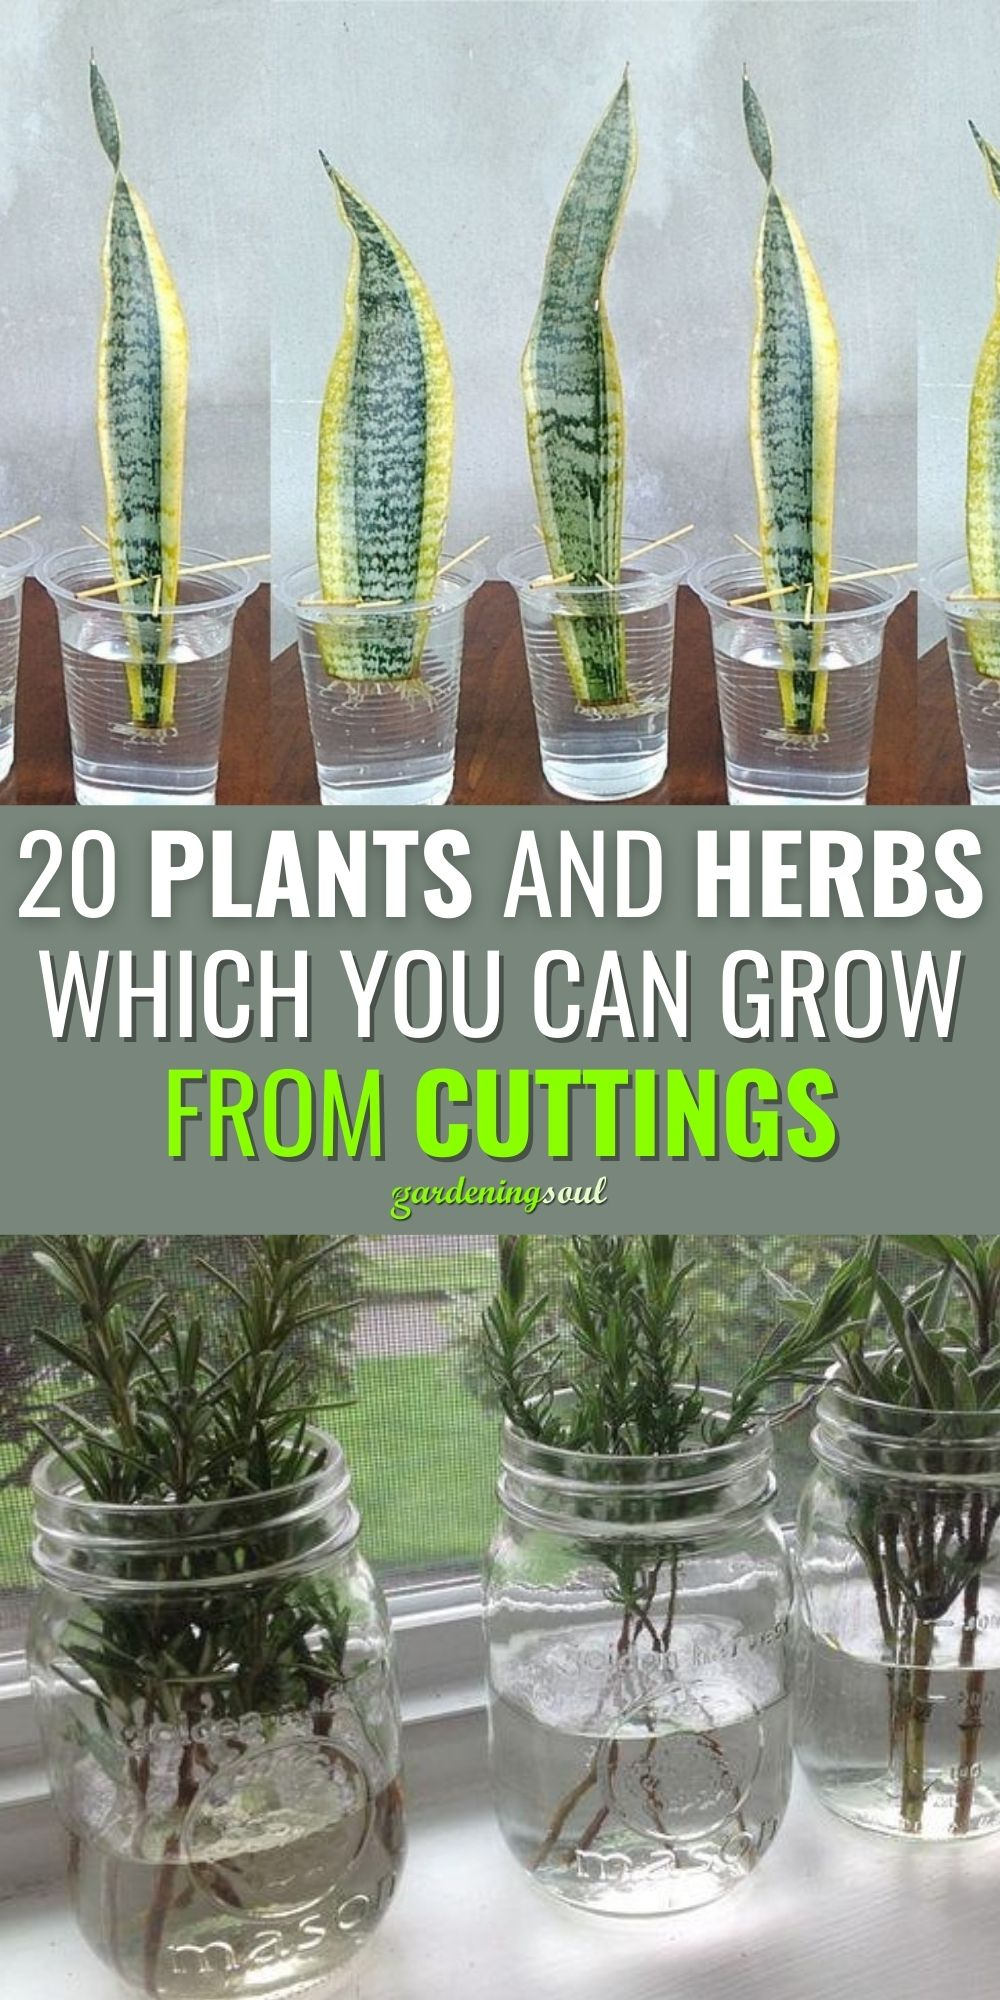 20 Plants And Herbs Which You Can Grow From Cuttin